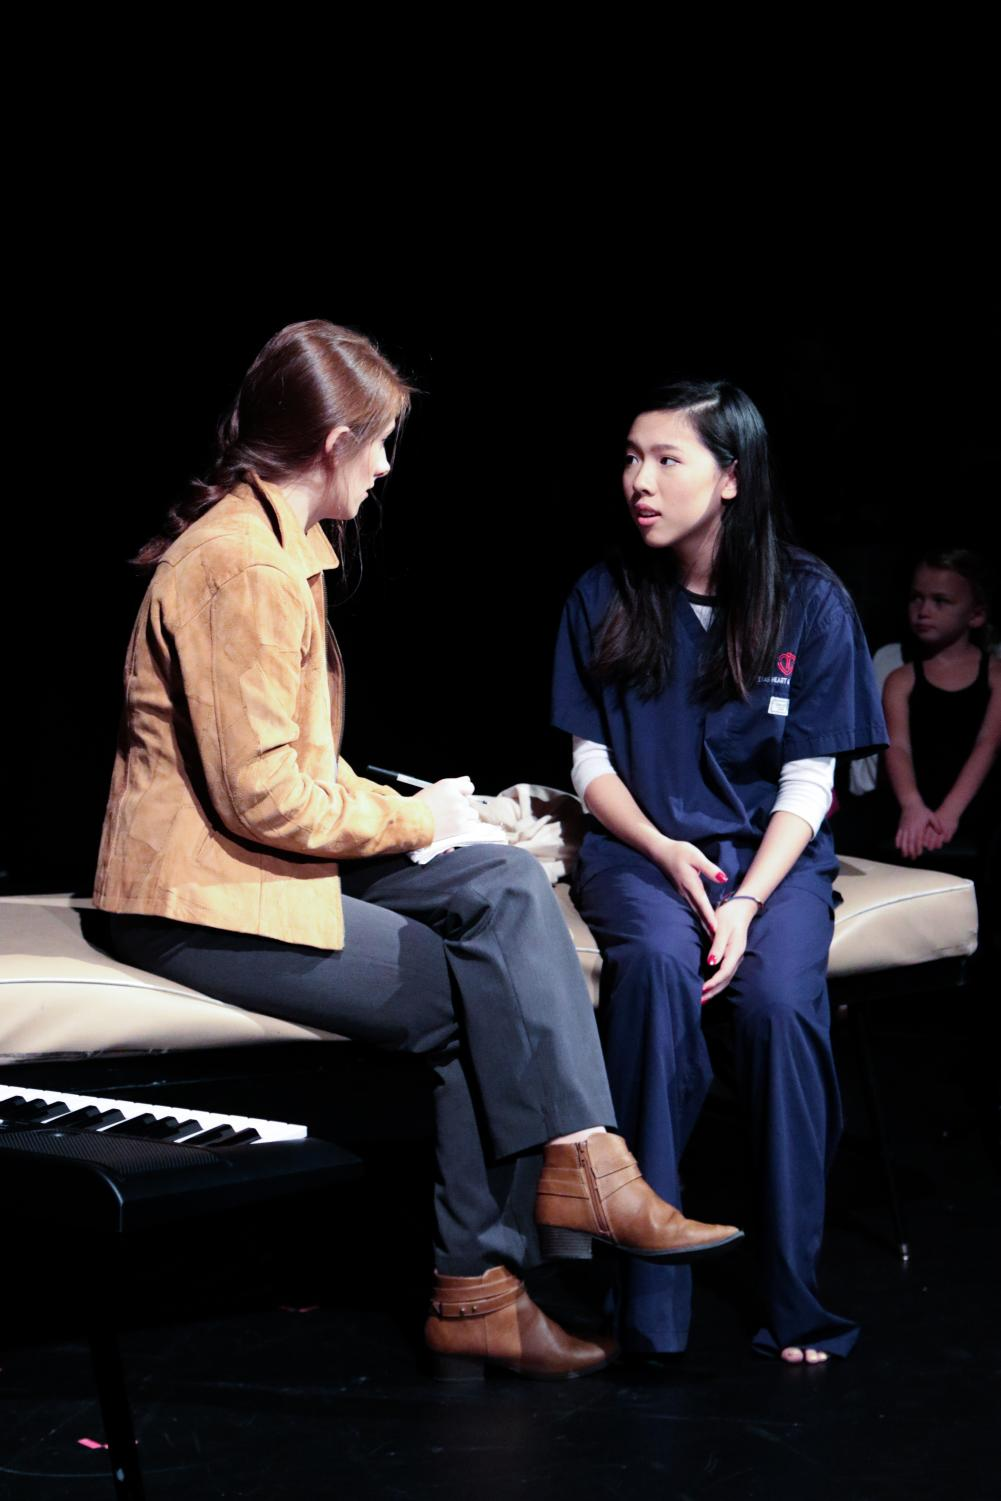 Rachel+Rusch+%2720+and+Lucy+Wang+%2720+act+as+their+characters+Heche+and+Angela+during+the+play+%27Trap%27.